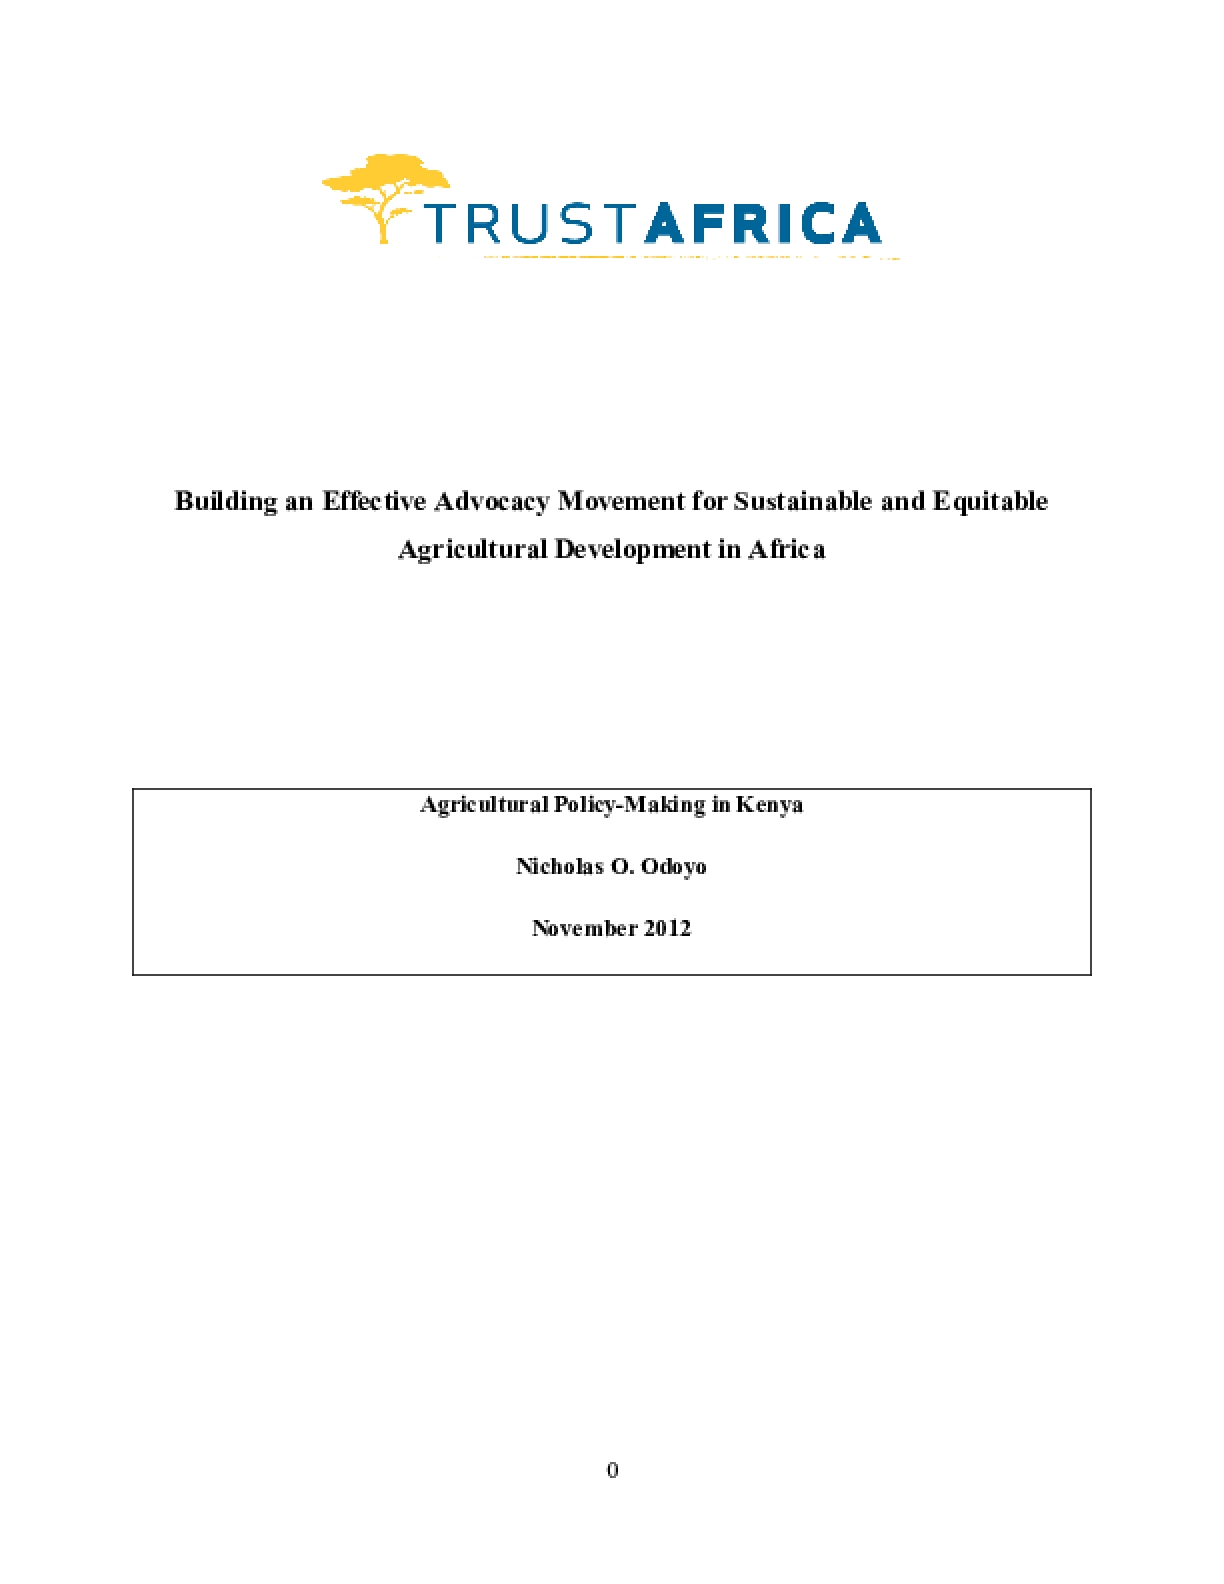 Building an Effective Advocacy Movement for Sustainable and Equitable Agricultural Development in Africa: Advocacy for Sustainable and Equitable Agricultural Development: Agricultural Policy-Making in Kenya